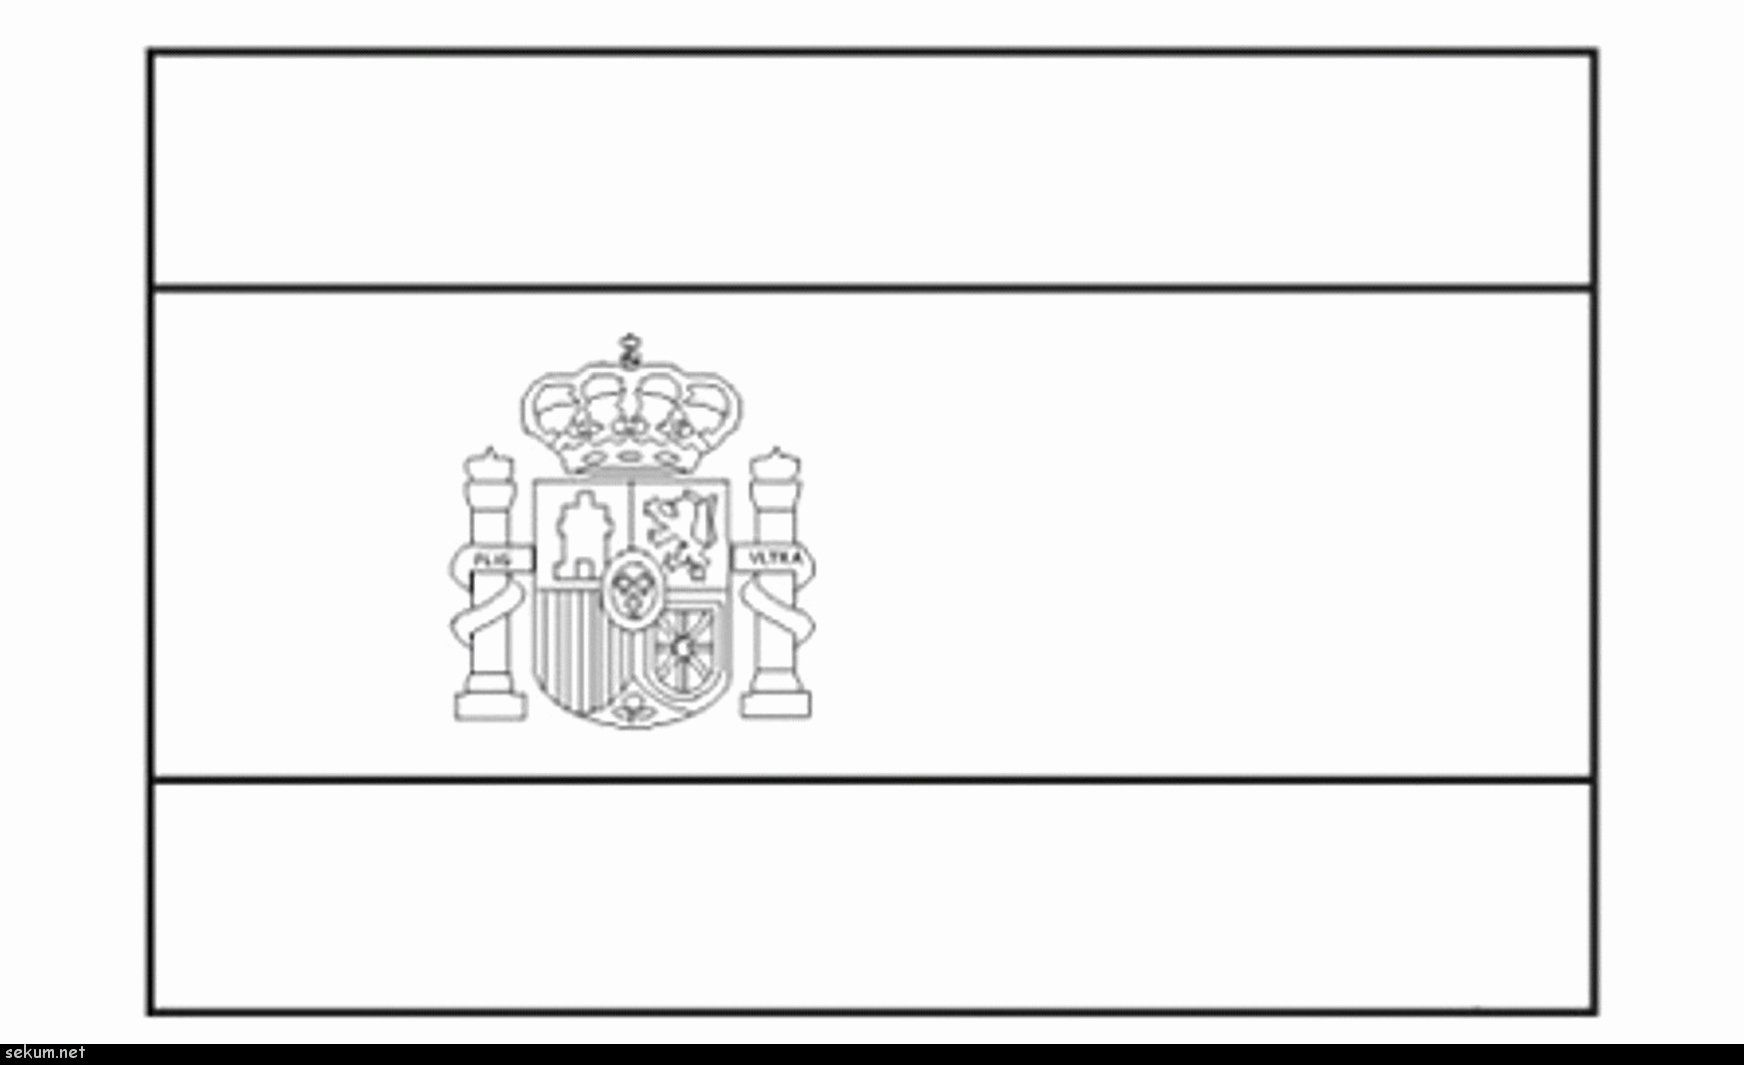 Spain Flag Coloring Page Lovely Spain Flag Coloring Page Interesting And Also 19 Flag Coloring Pages Spain Flag Coloring Pages